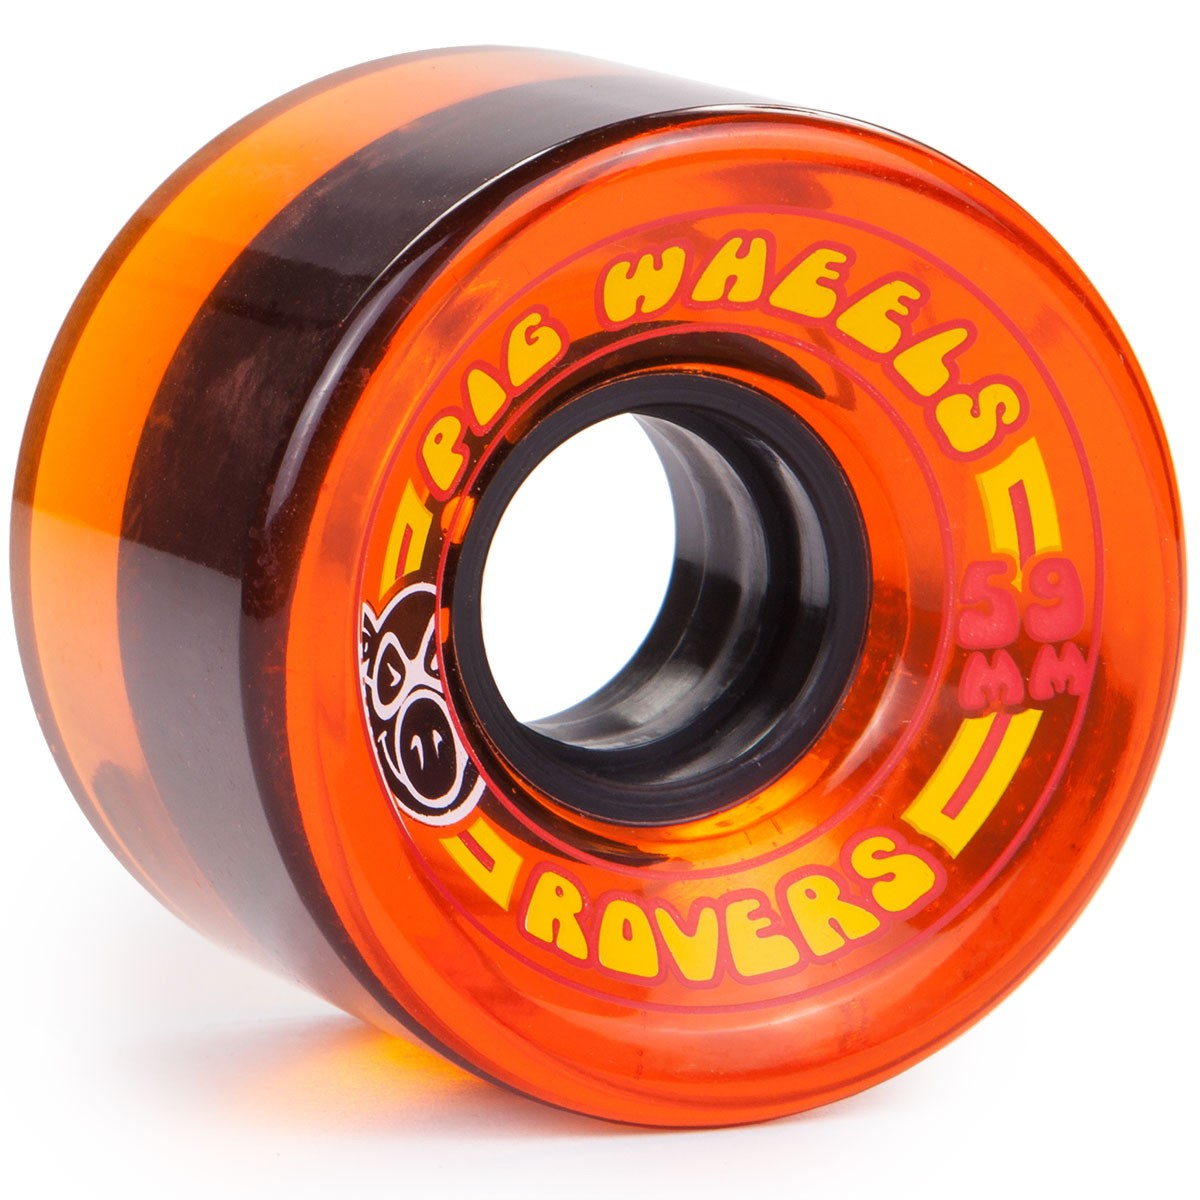 Pig Rover Cruiser Skateboard Wheels 78a